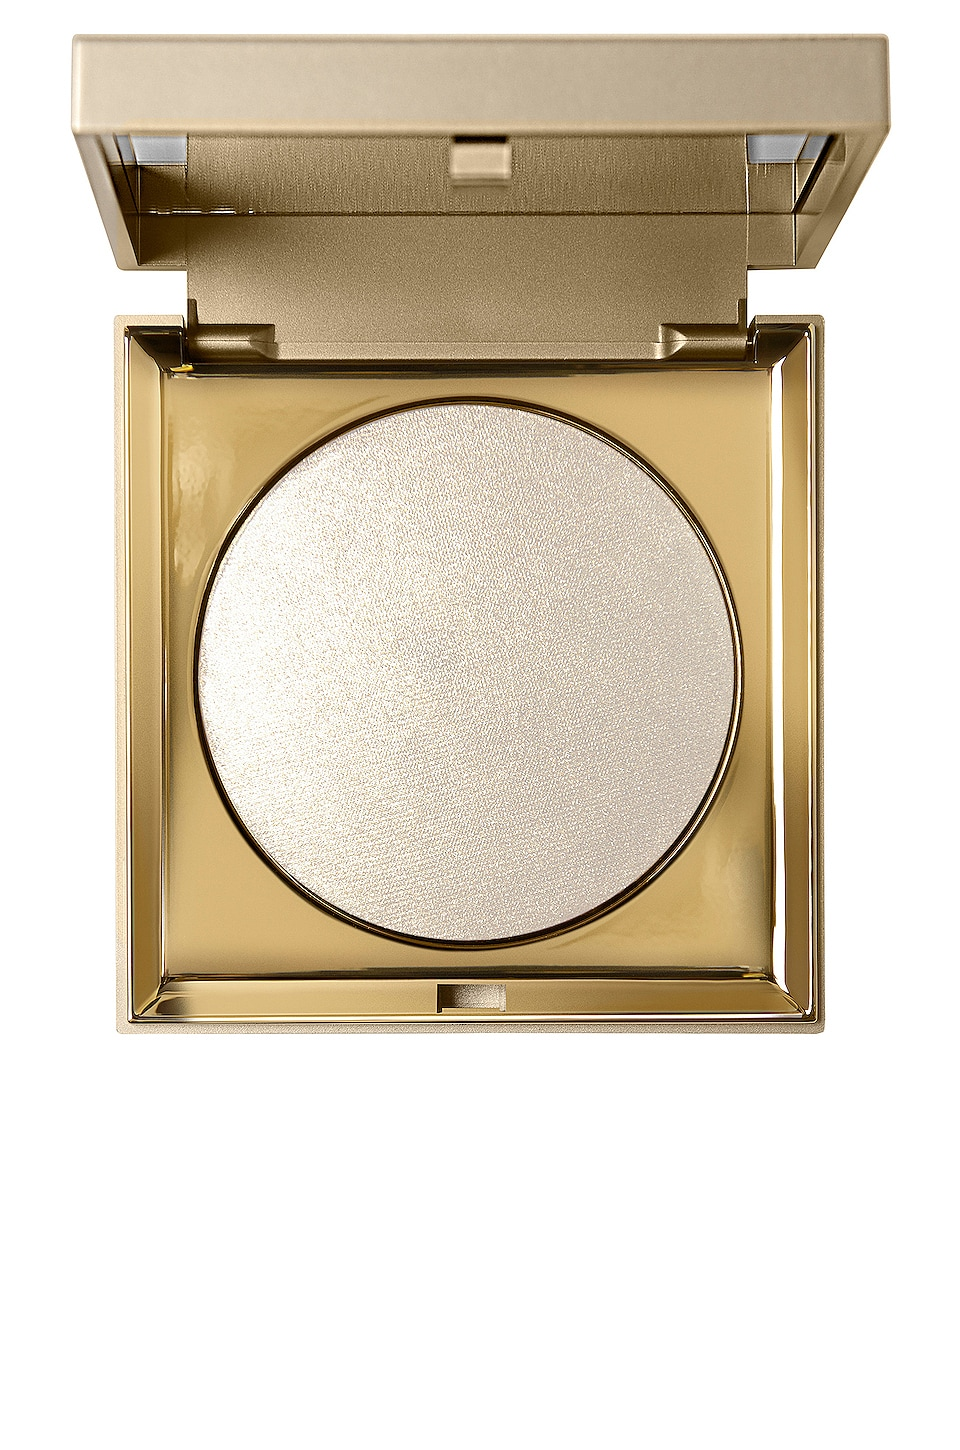 Stila ILLUMINATEUR HEAVEN'S HUE HIGHLIGHTER